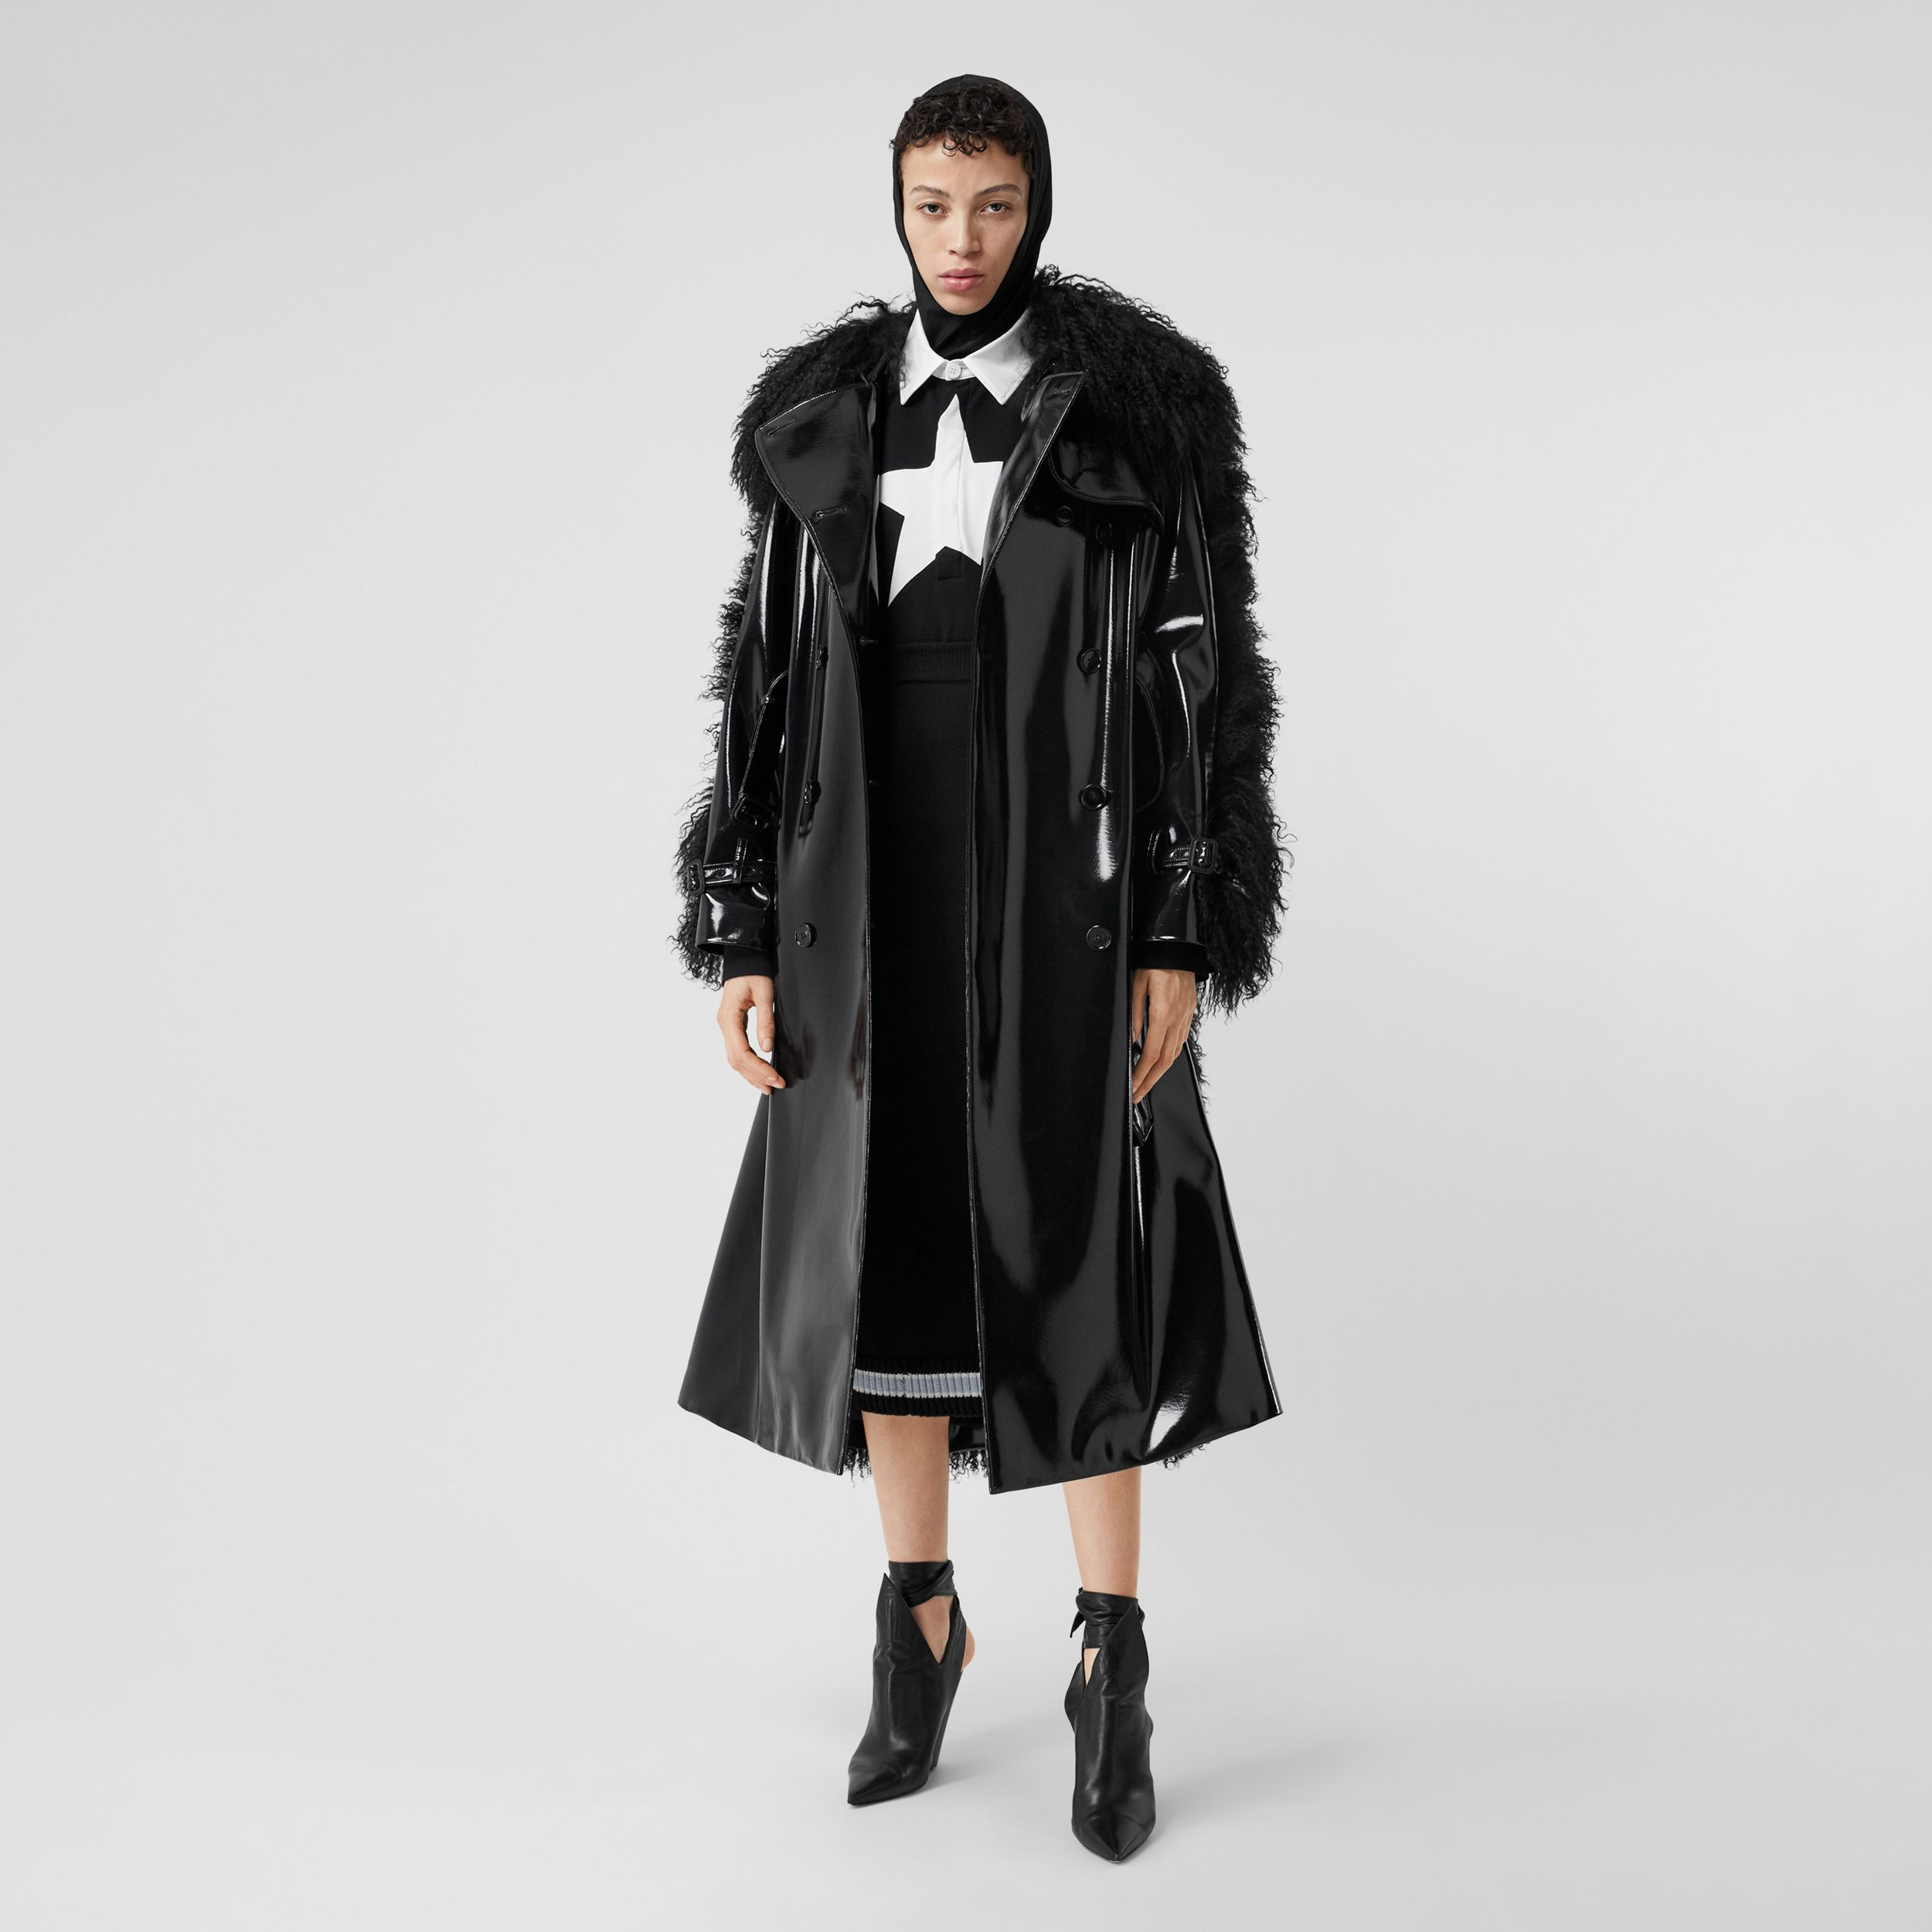 Shearling Trim Vinyl Trench Coat in Black - Women | Burberry Hong Kong S.A.R. - 1